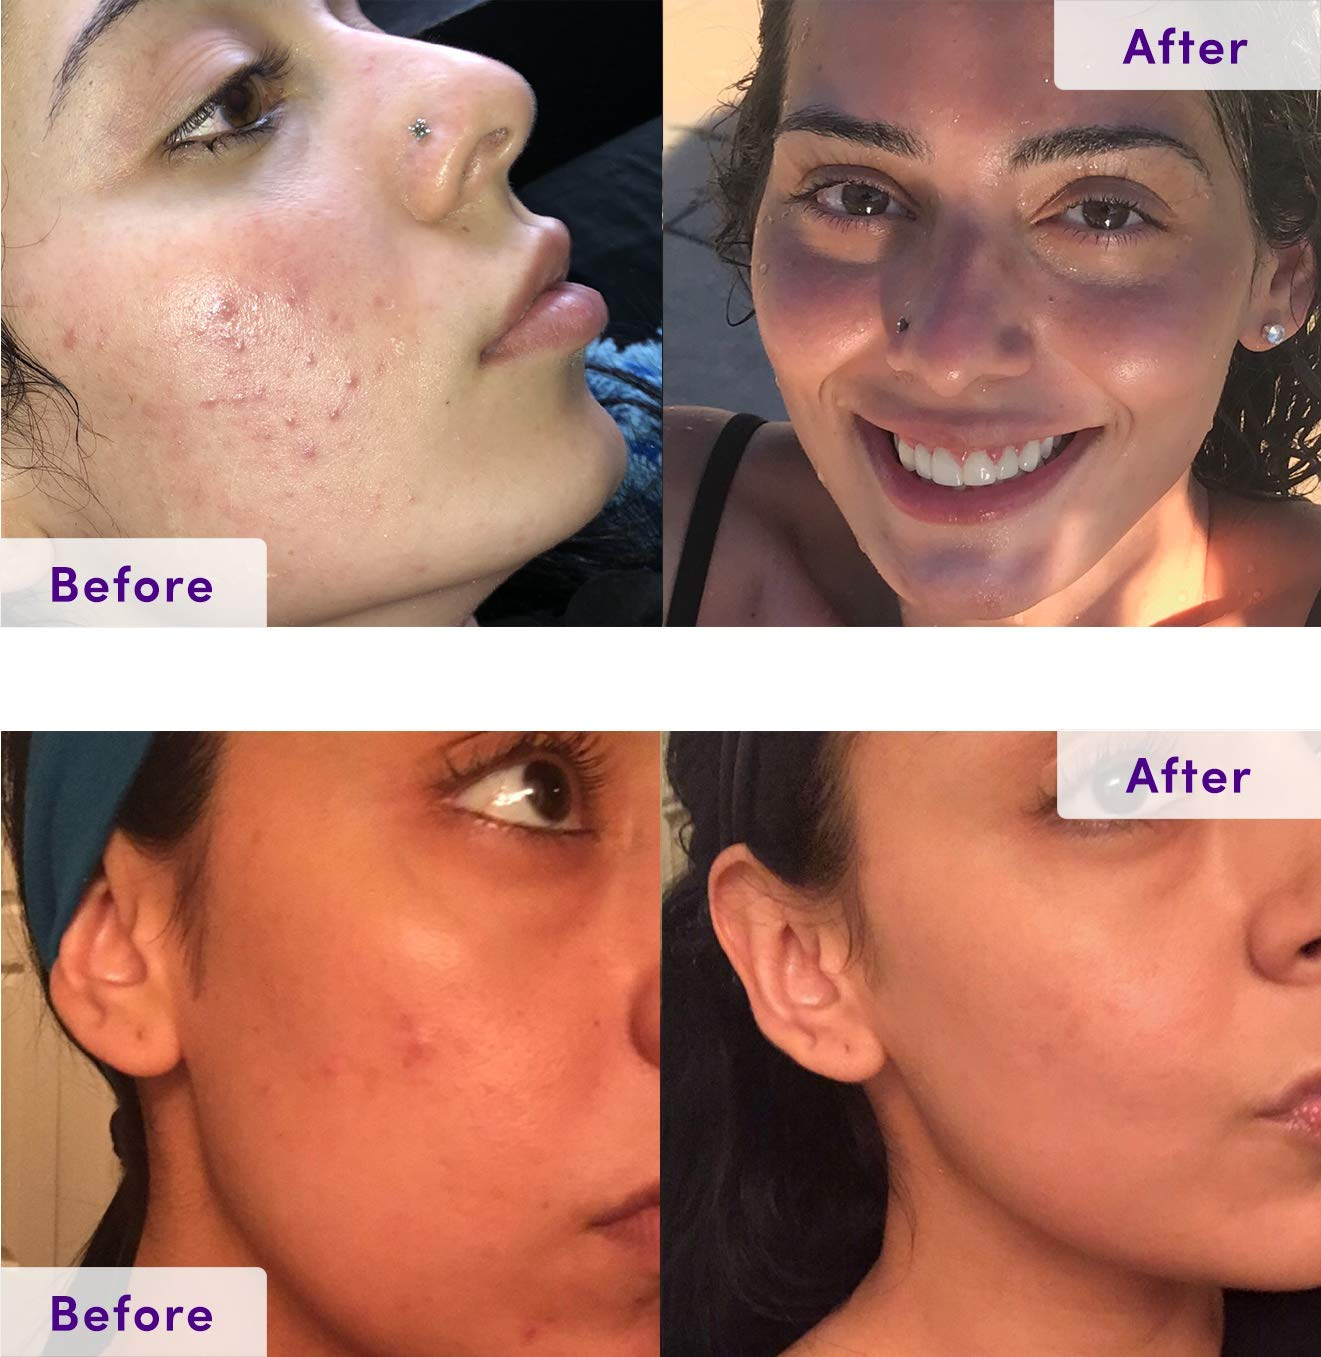 NxN Acne Treatment 4-Step Clear Skin System with Probiotics, Natural Multi-Fruit Extracts and Salicylic Acid for Acne Blemishes and Breakouts For all Skin Types (Including Sensitive Skin) by Nurture by Nature (Image #5)